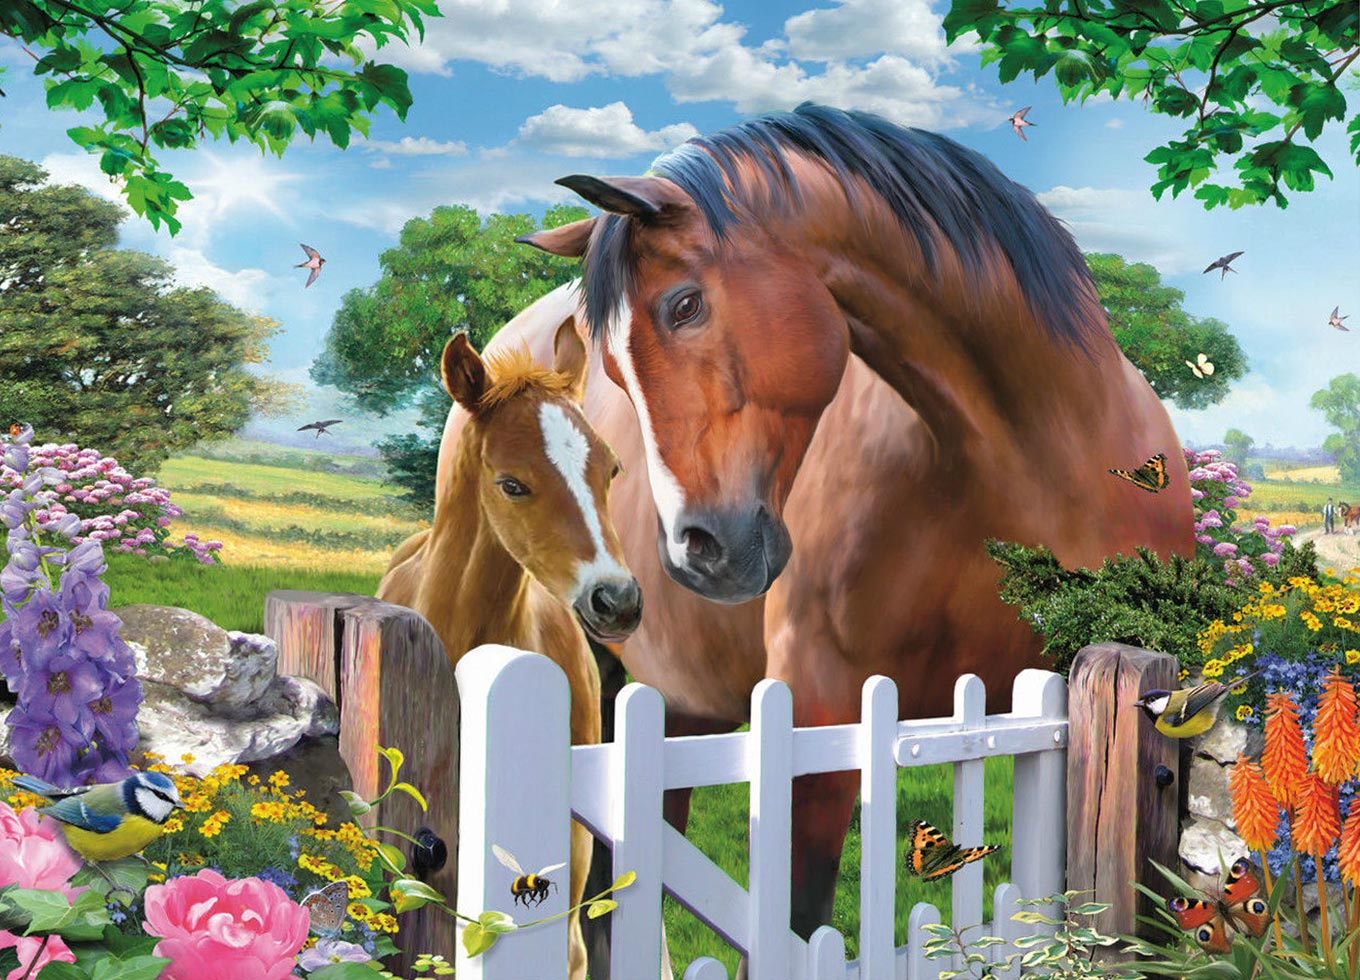 horses-at-the-gate